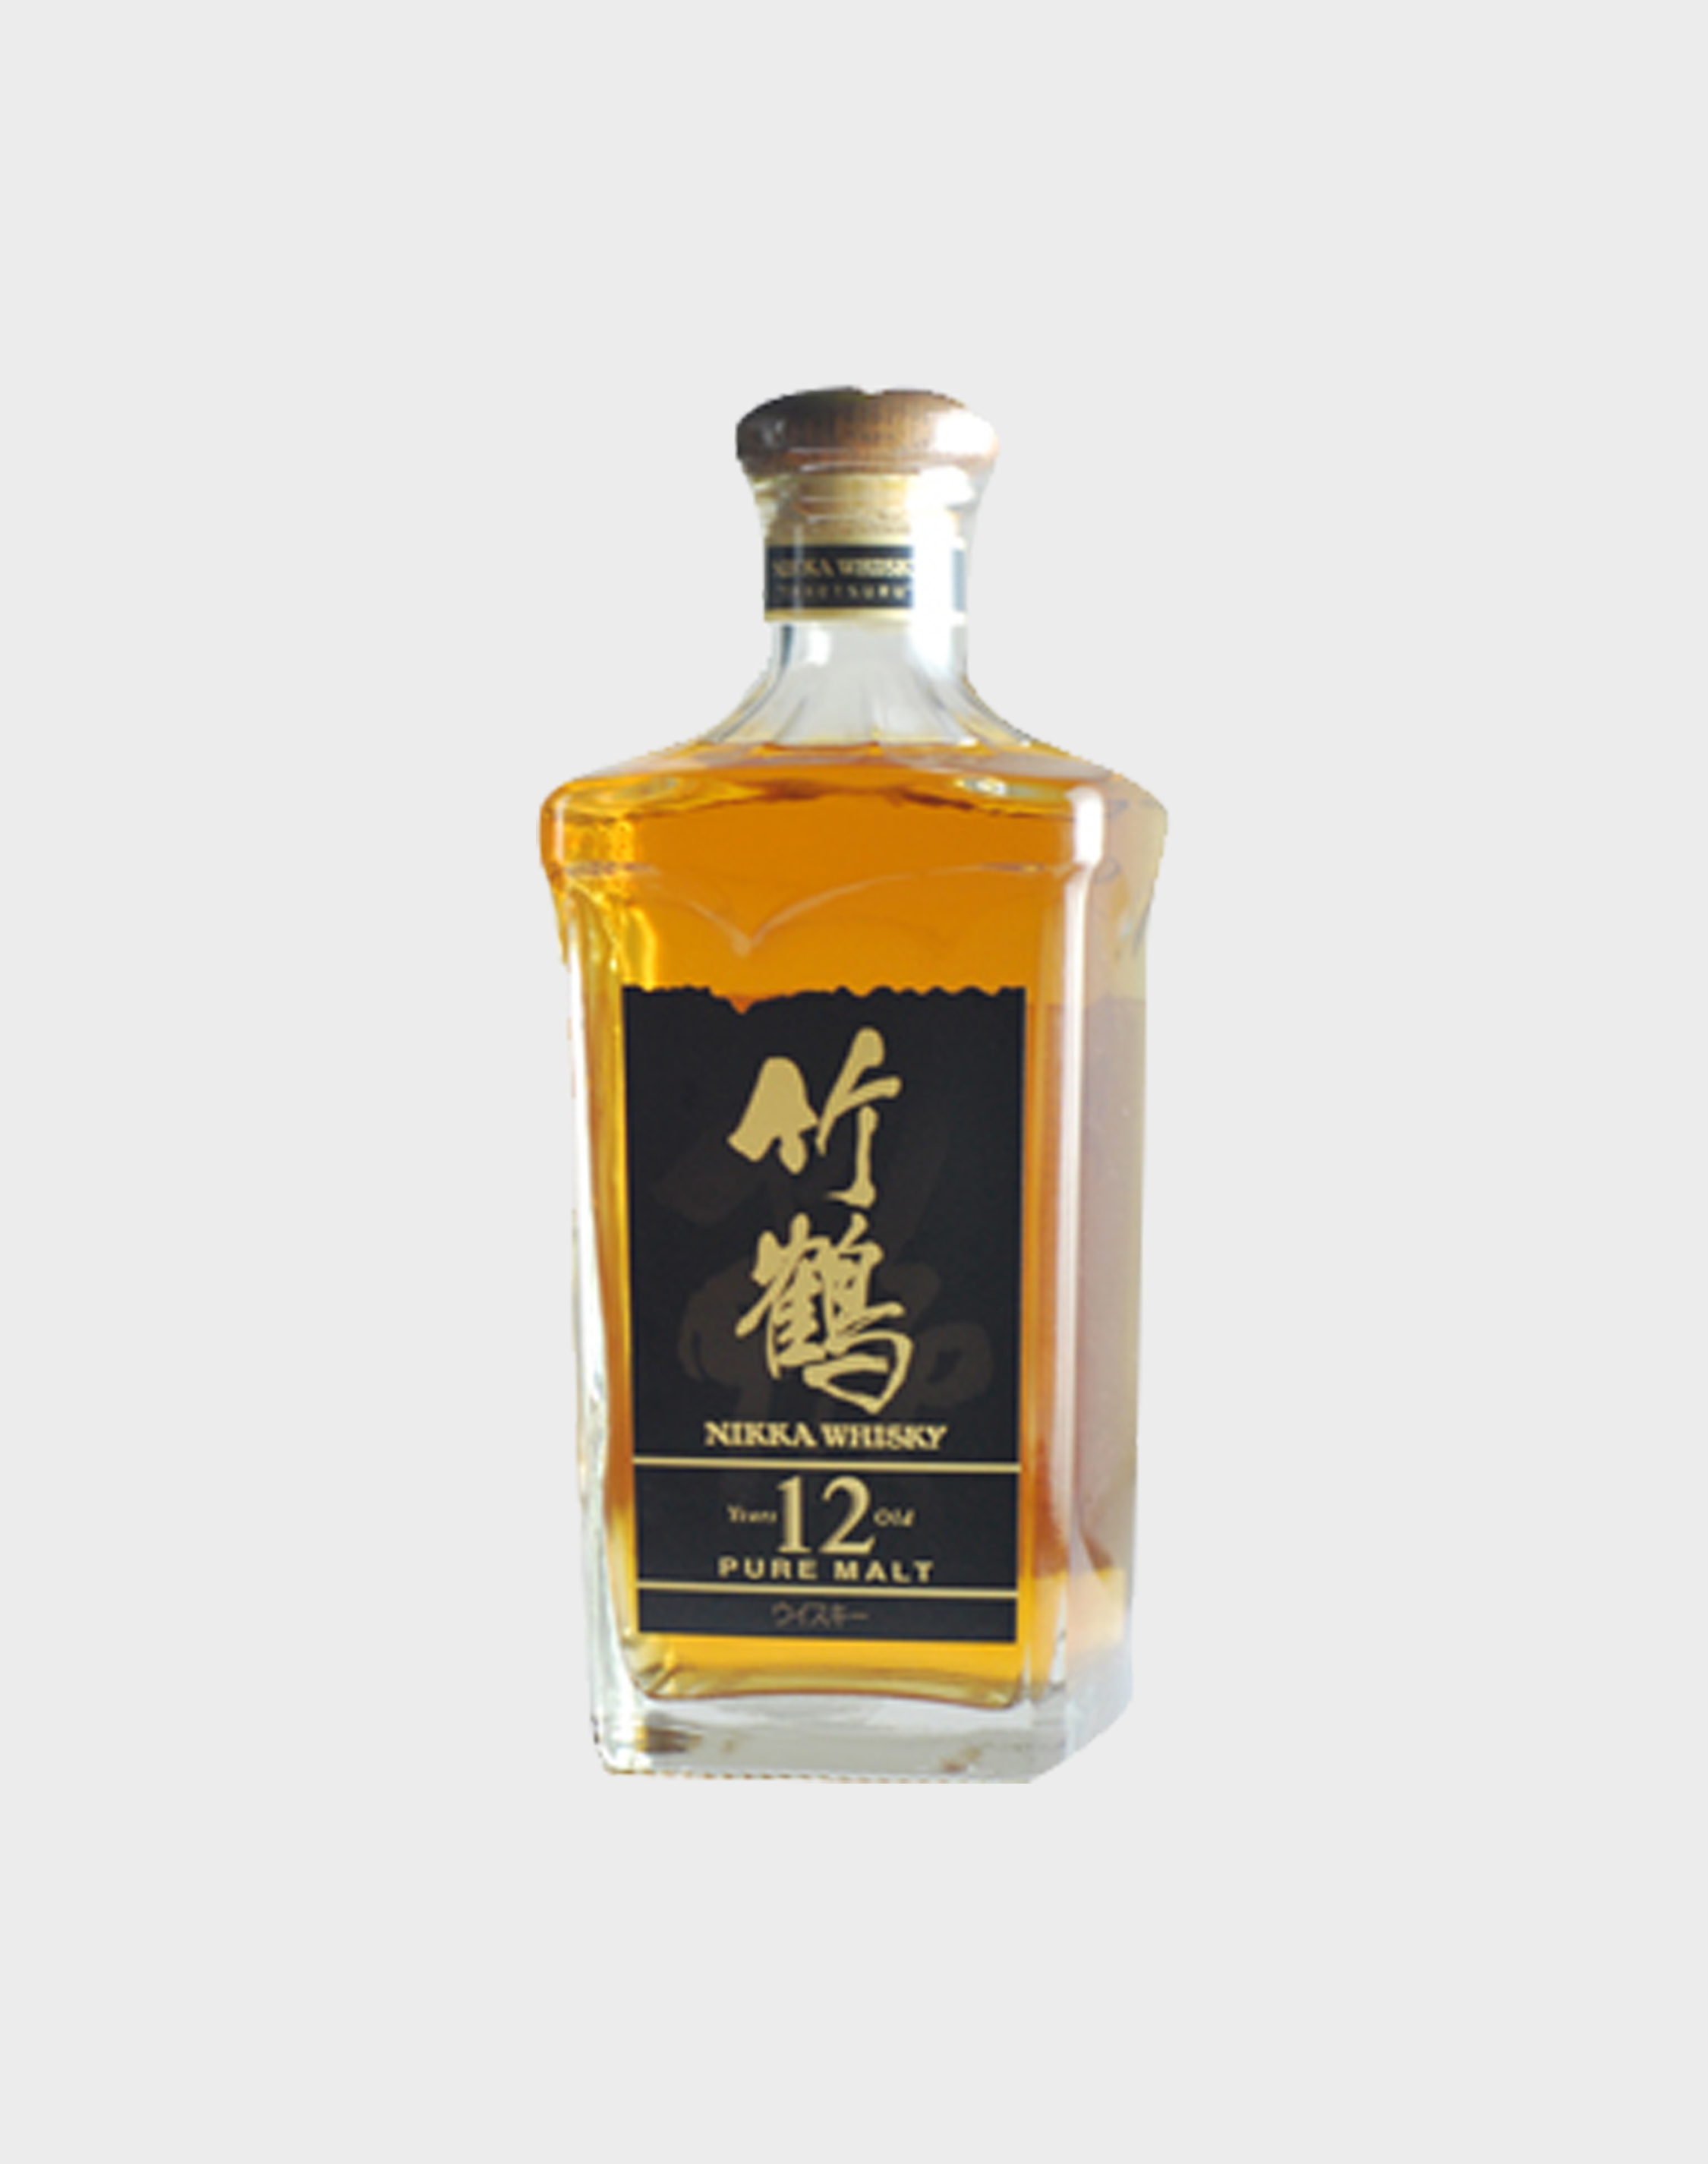 Nikka-Whisky-Pure-Malt-12-Year-Old-Square-Bottle-No-Box